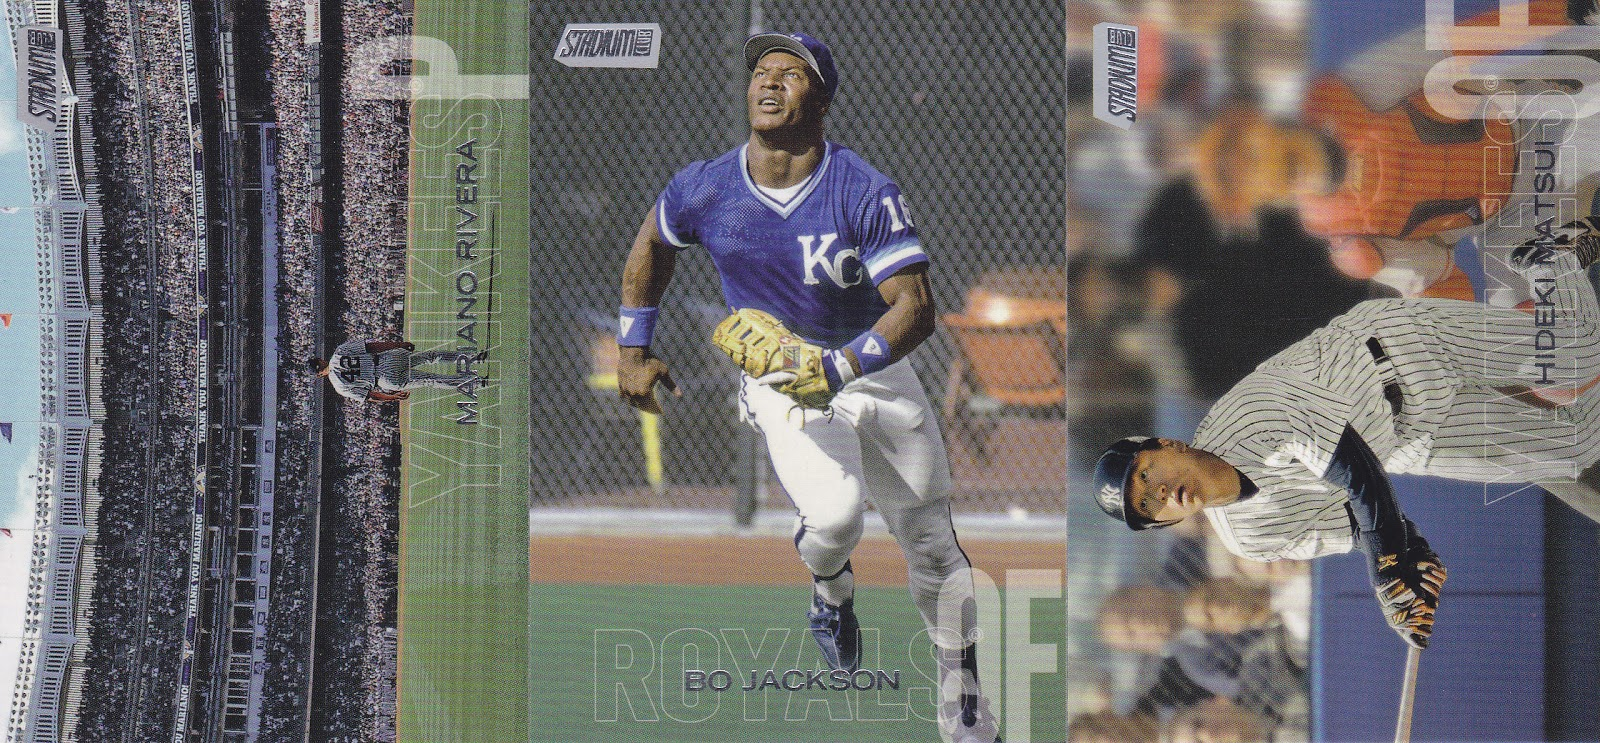 2018 Topps Stadium Club Review Is It Time For Topps To